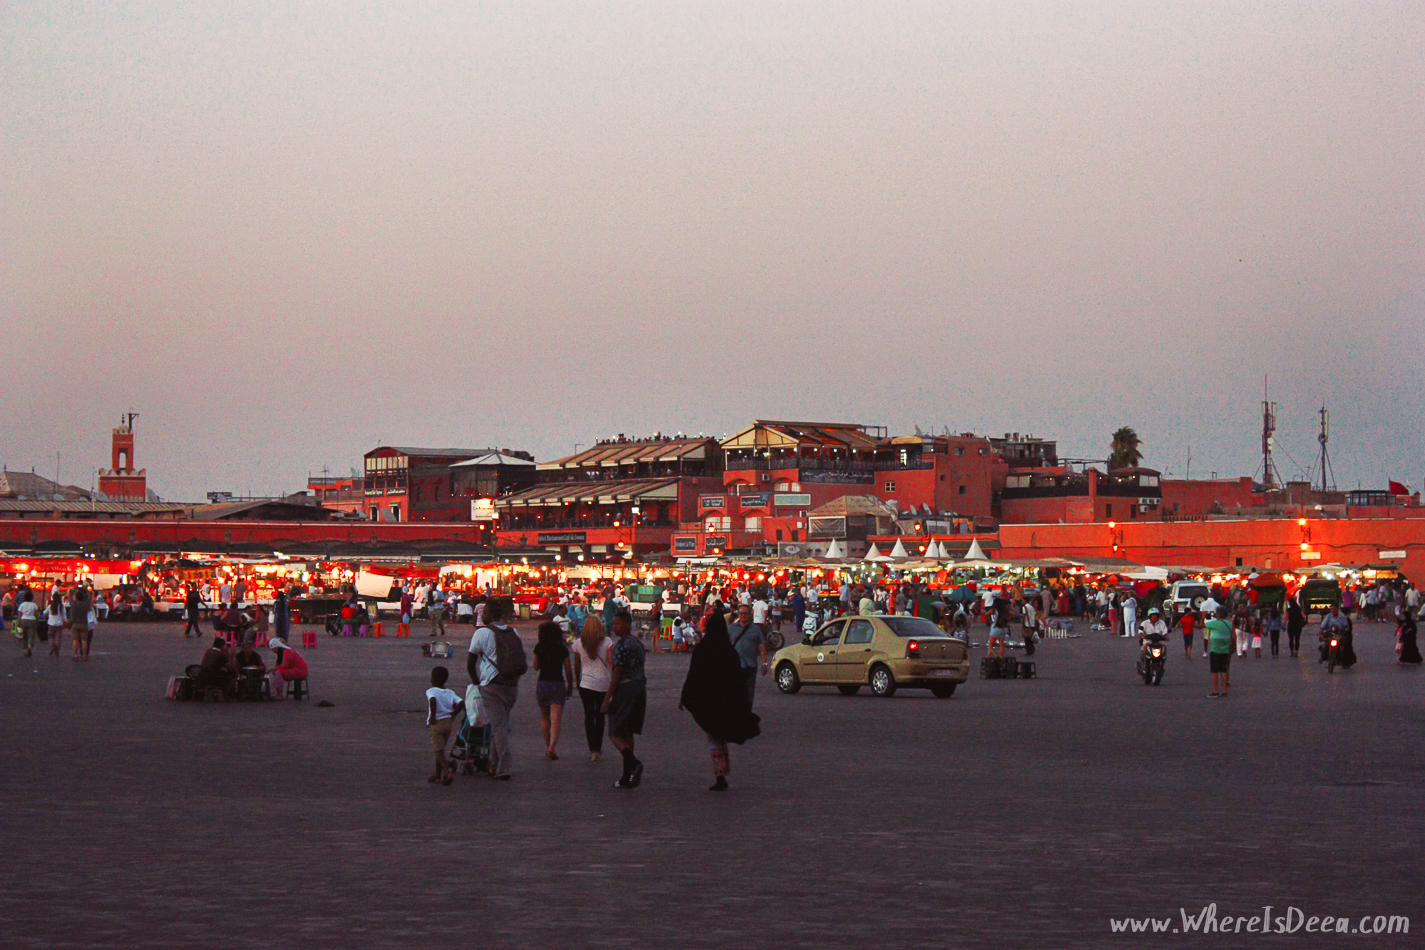 One night in Marrakech